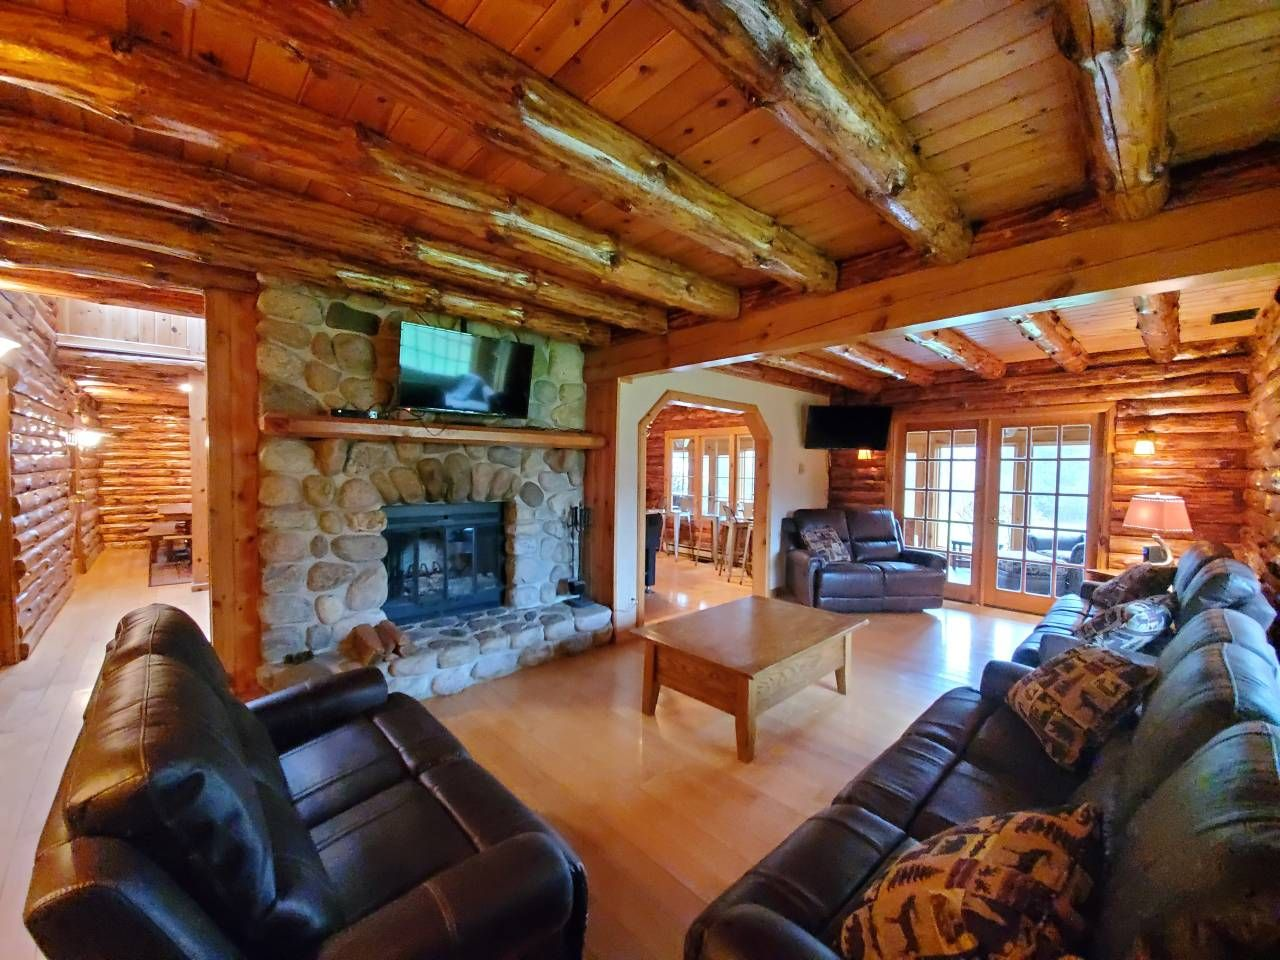 Rustic Lake George Adk Lodge W Luxury Ammenities Houses For Rent In Queensbury Renting A House Airbnb House House